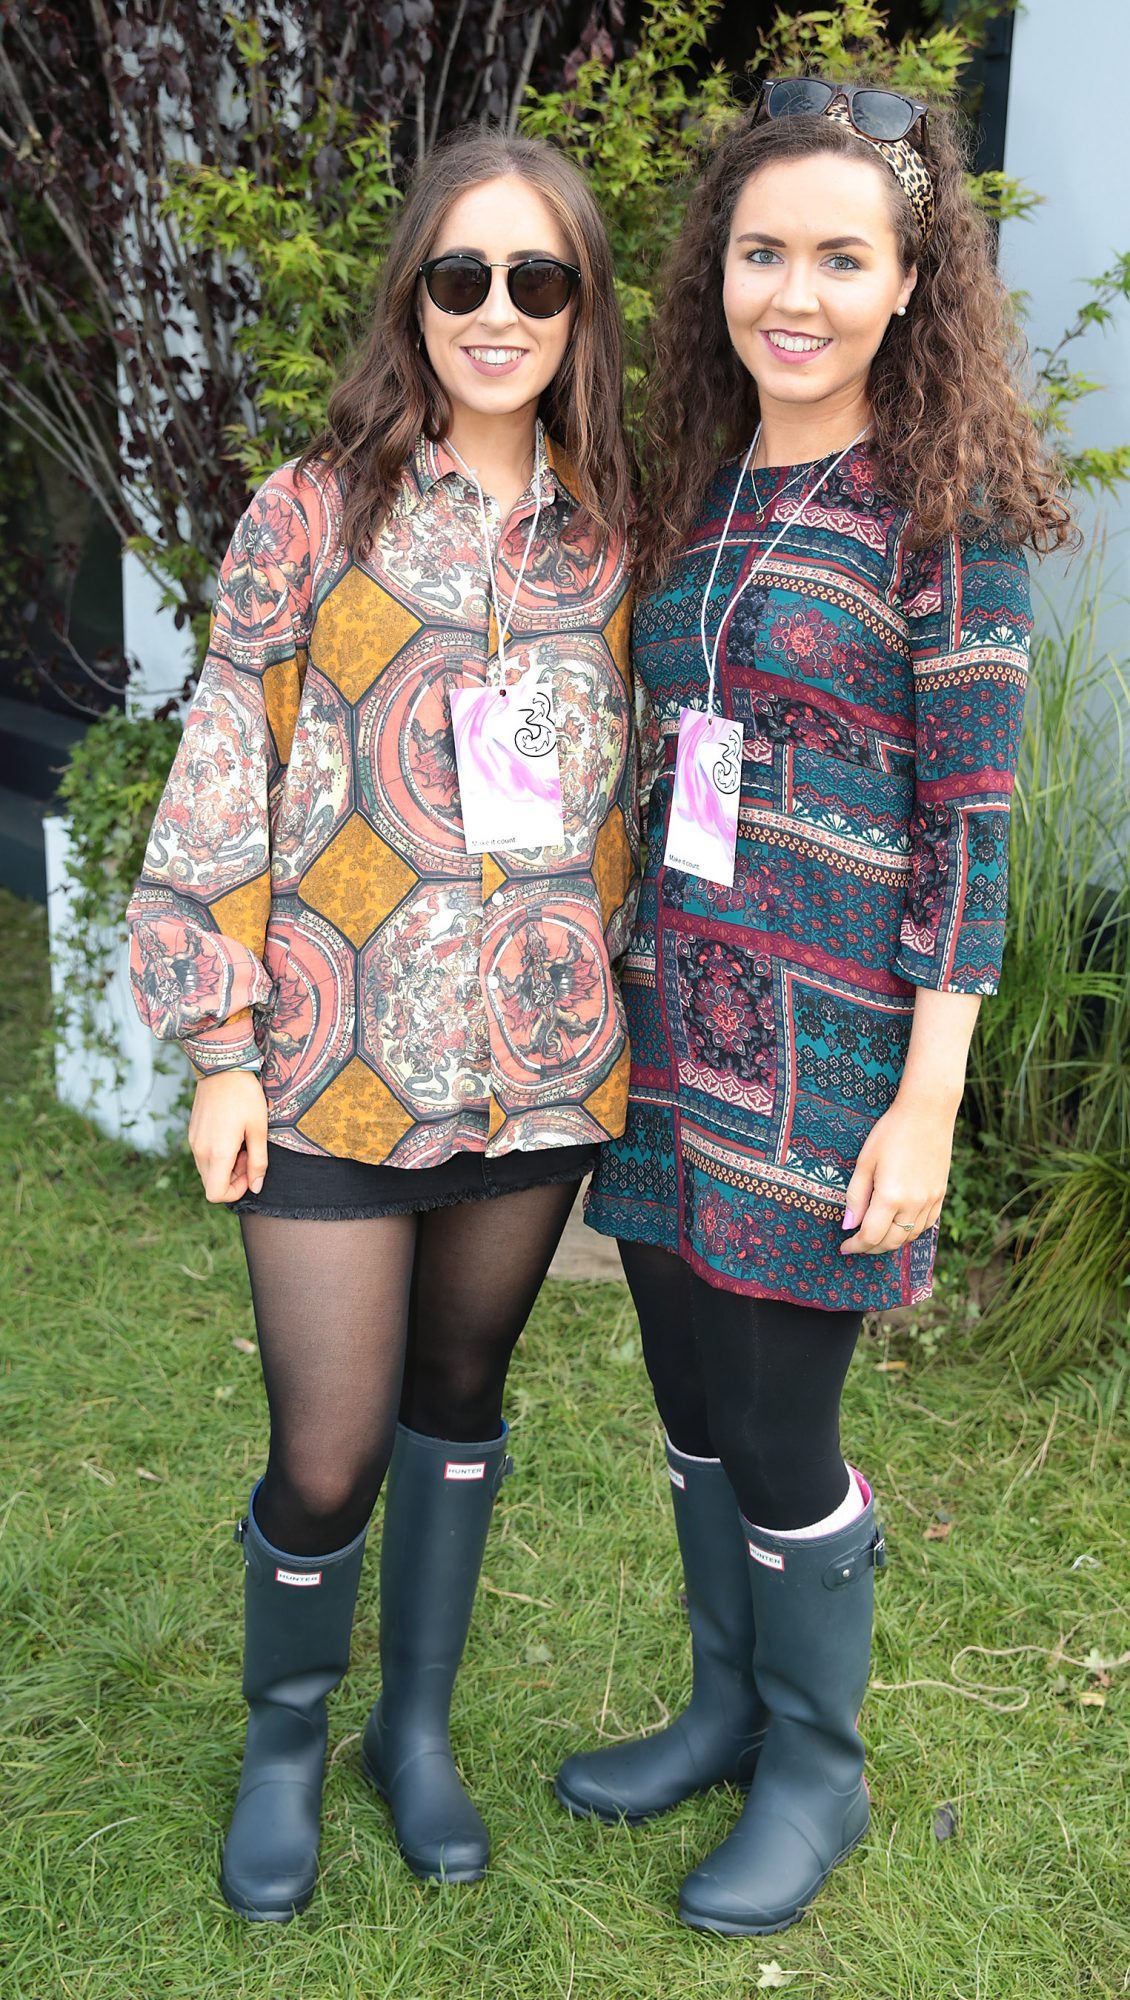 Caoimhe Murray and Sorcha Murray at Three's Charge & Chill at Electric Picnic at Stradbally, Co. Laois. 